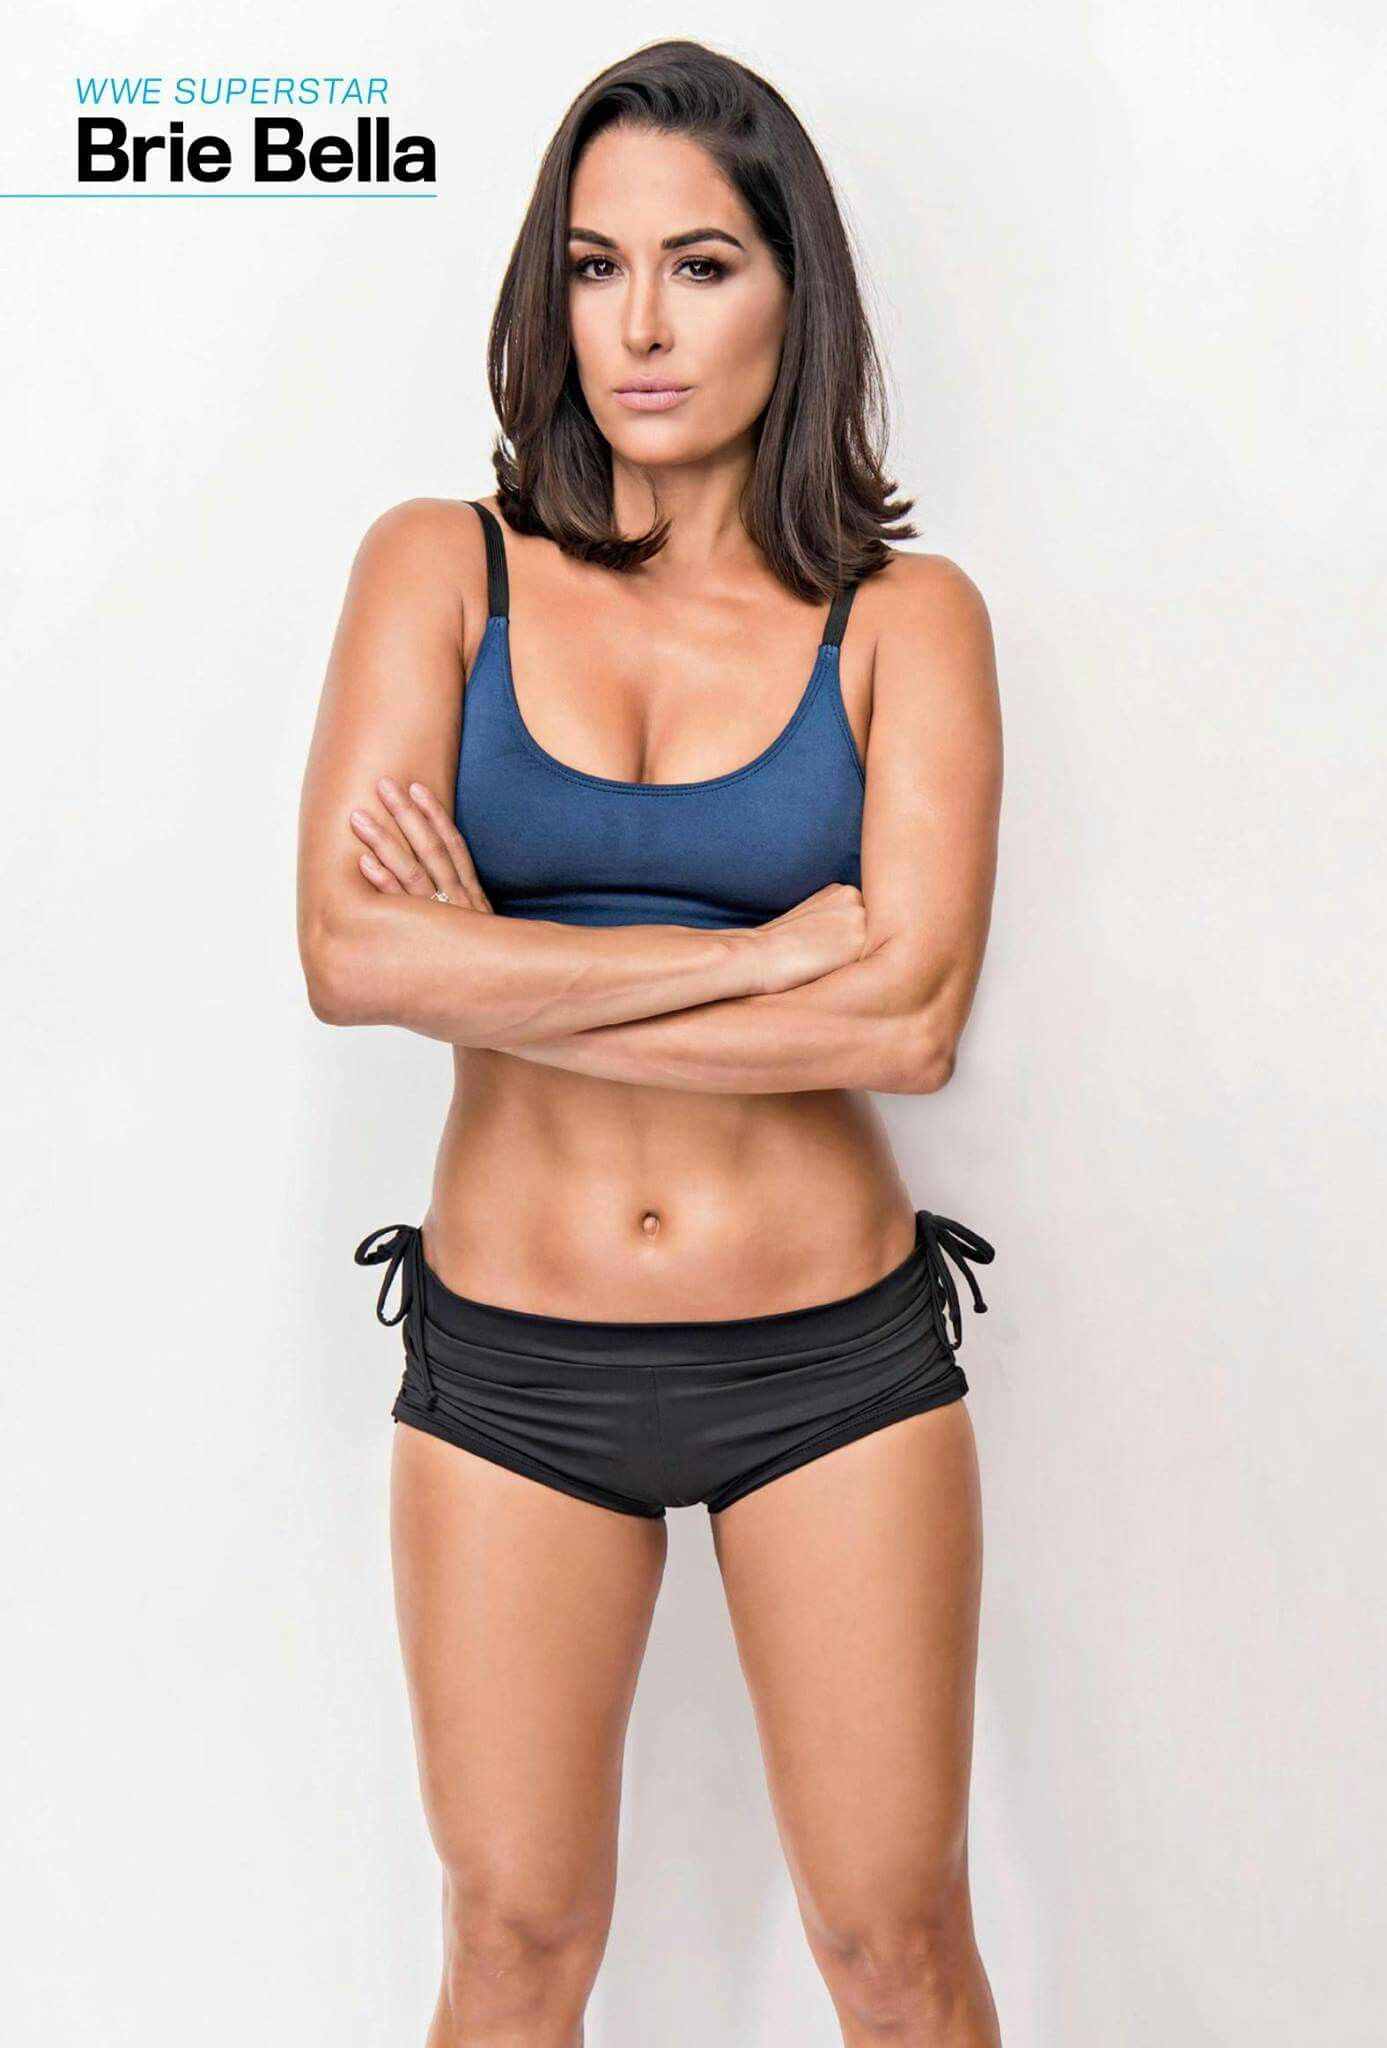 Brie Bella hot pic